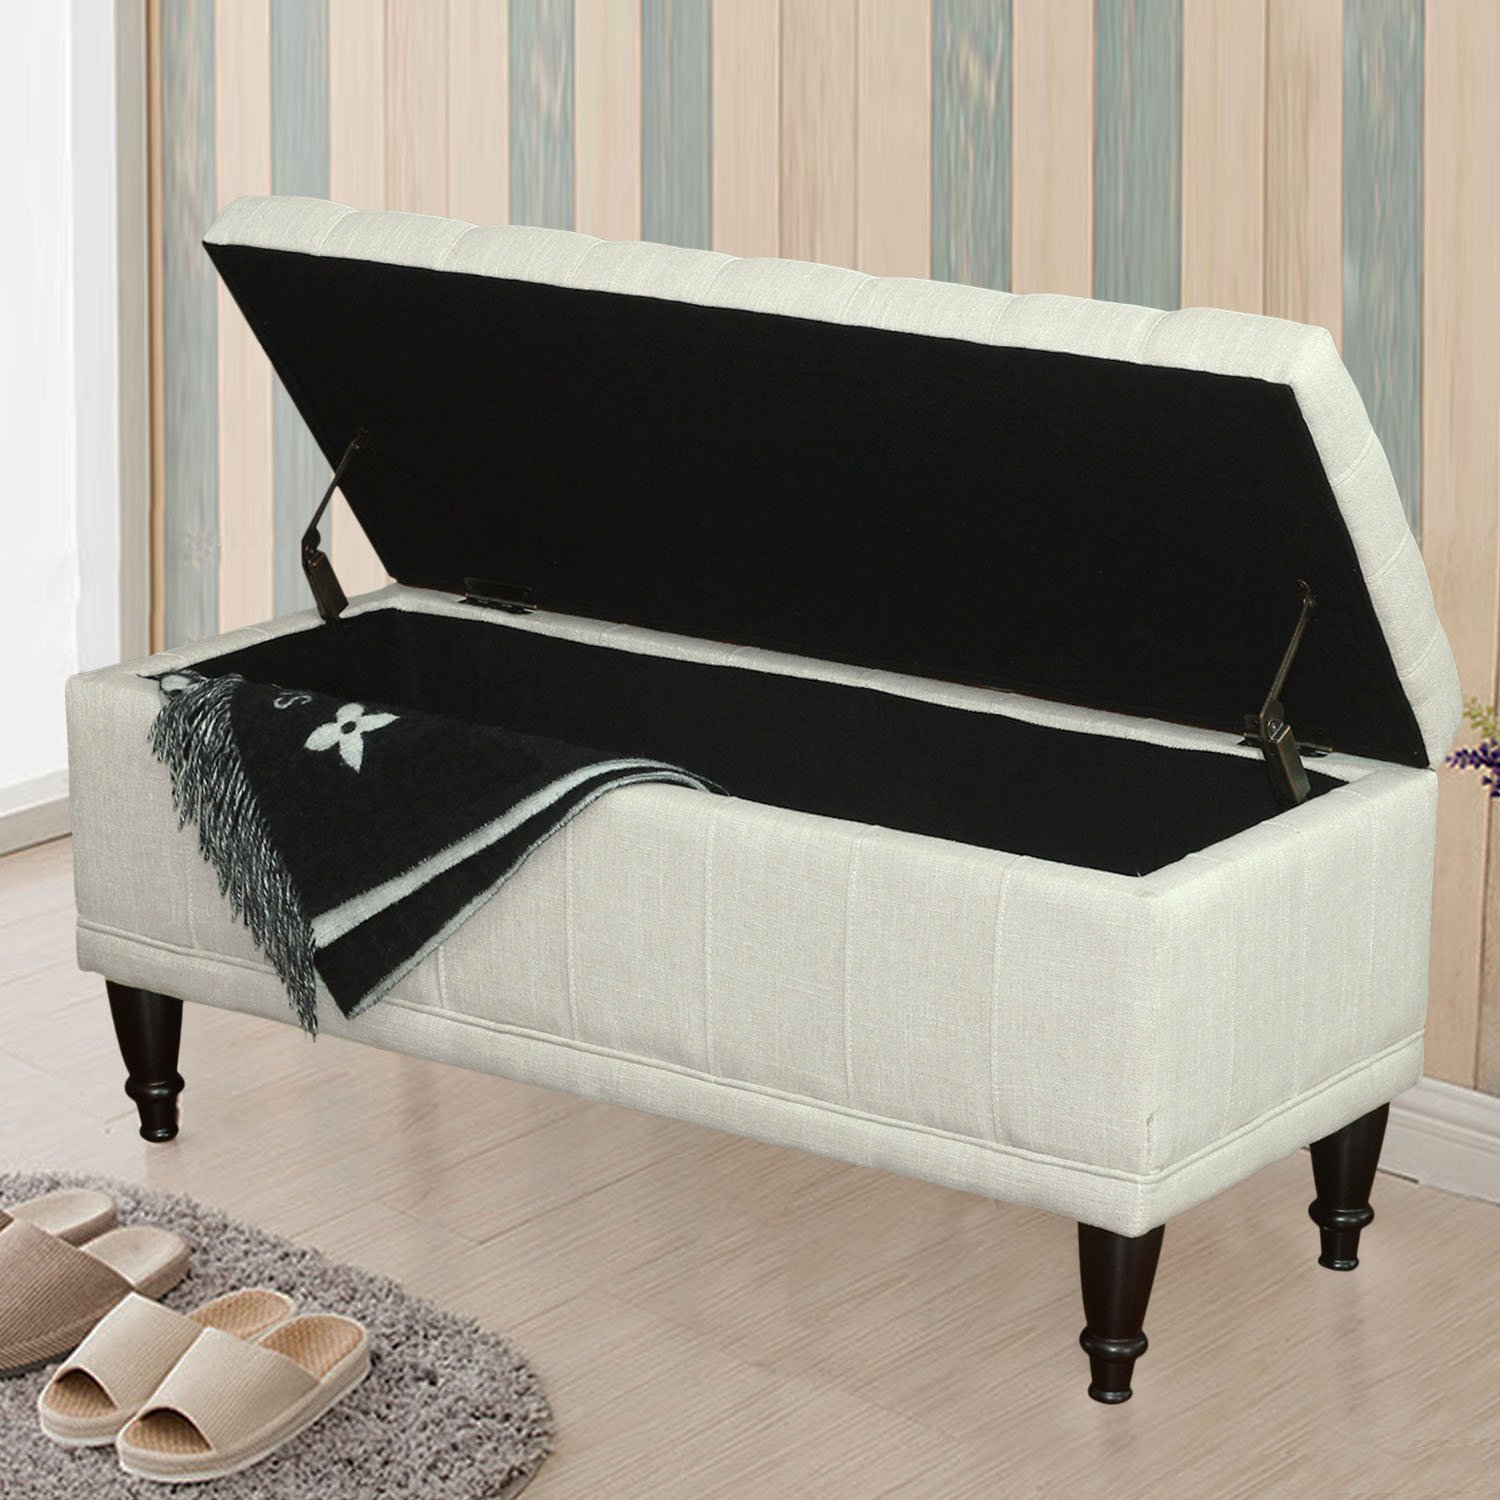 Amazon Adeco Fabric Sturdy Design Rectangular Tufted Lift Top